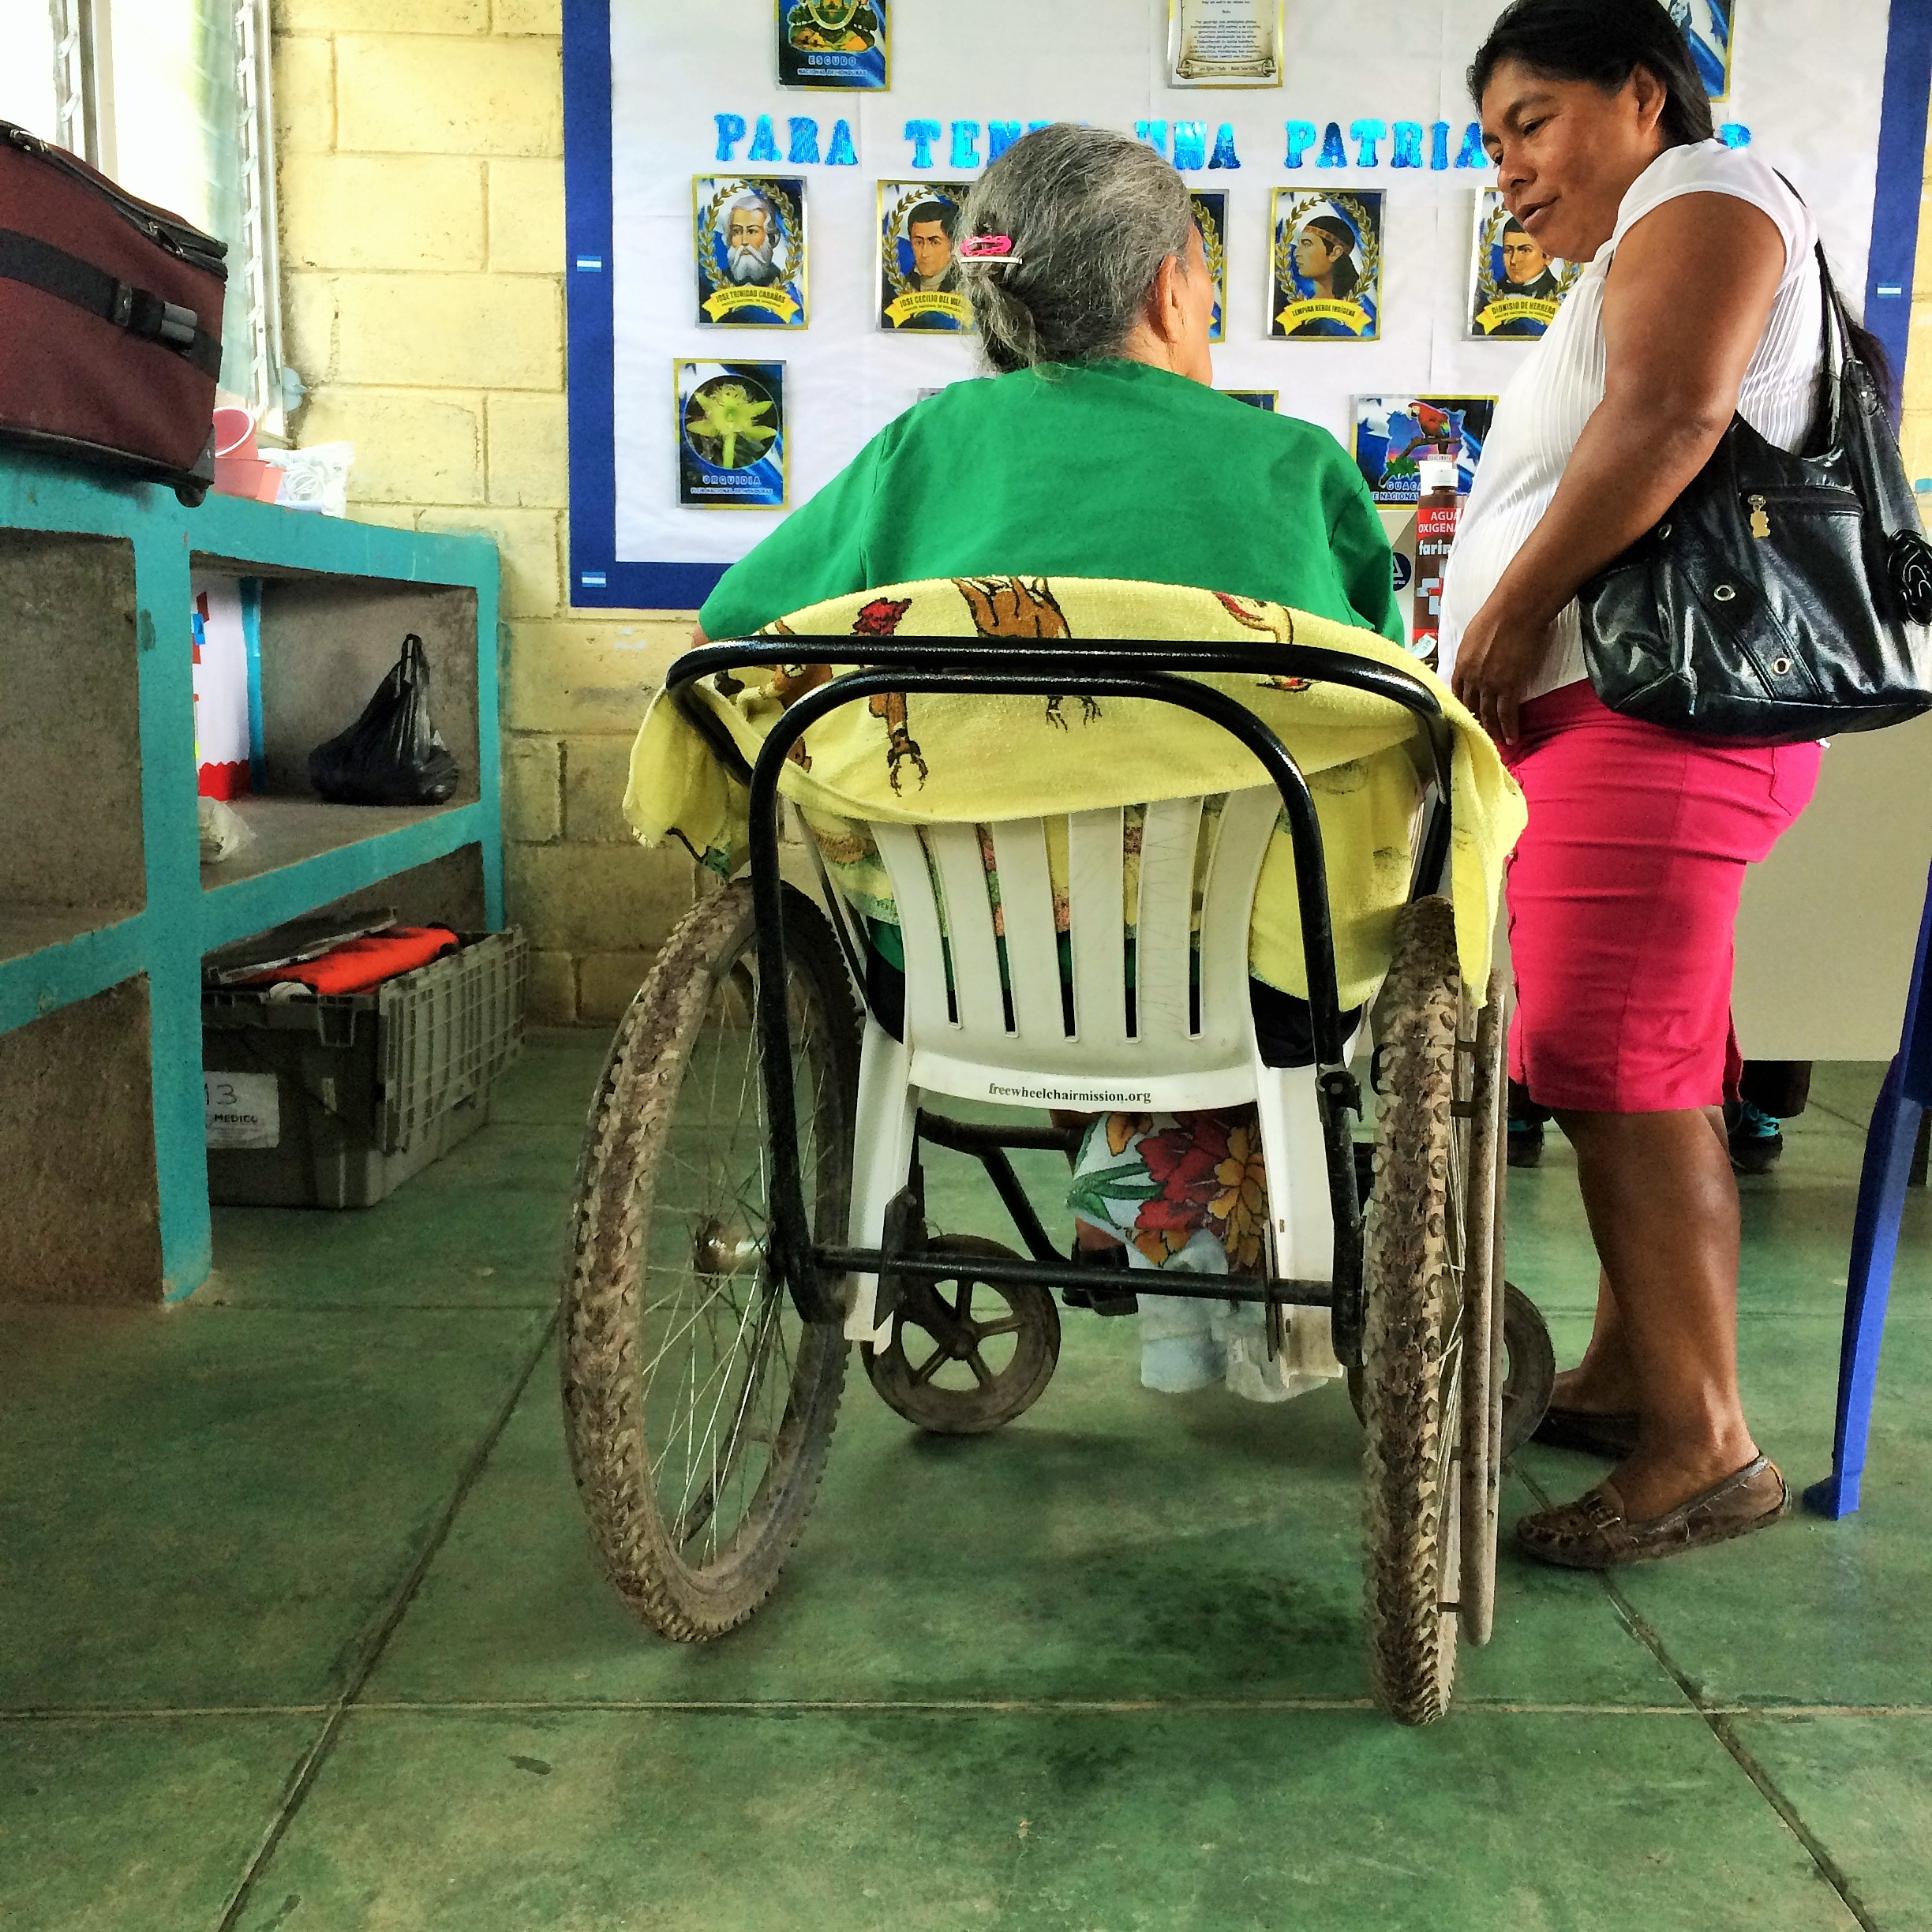 An innovative wheelchair fabricated out of a lawn chair and bike tires enabled this woman to make it to the clinic for care.